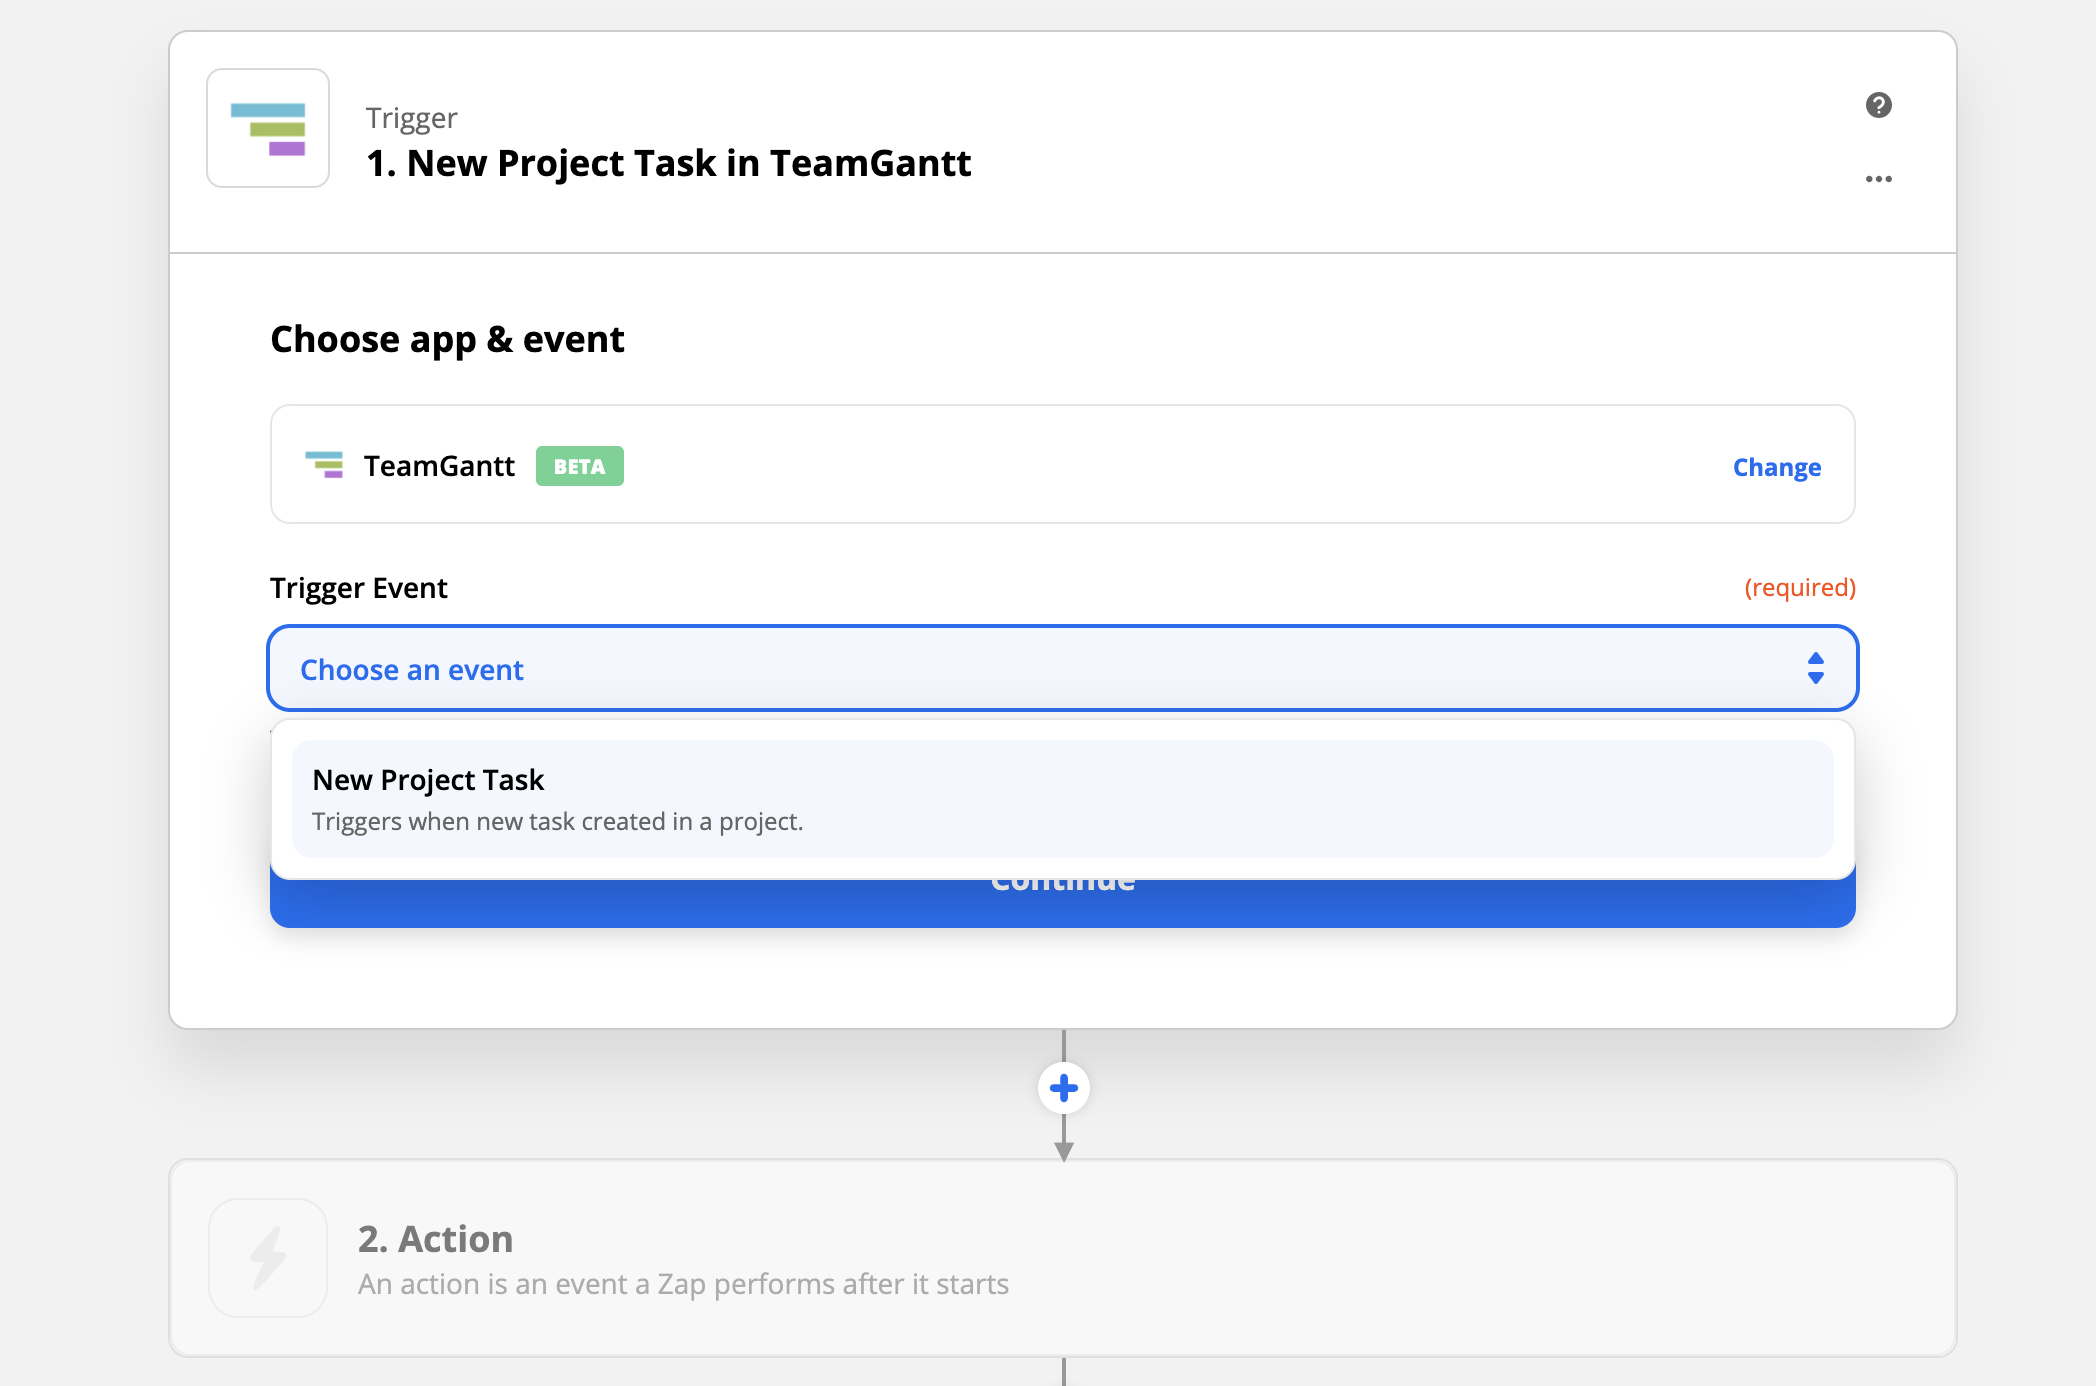 Select the New Project Task trigger event for TeamGantt's Zapier integration.